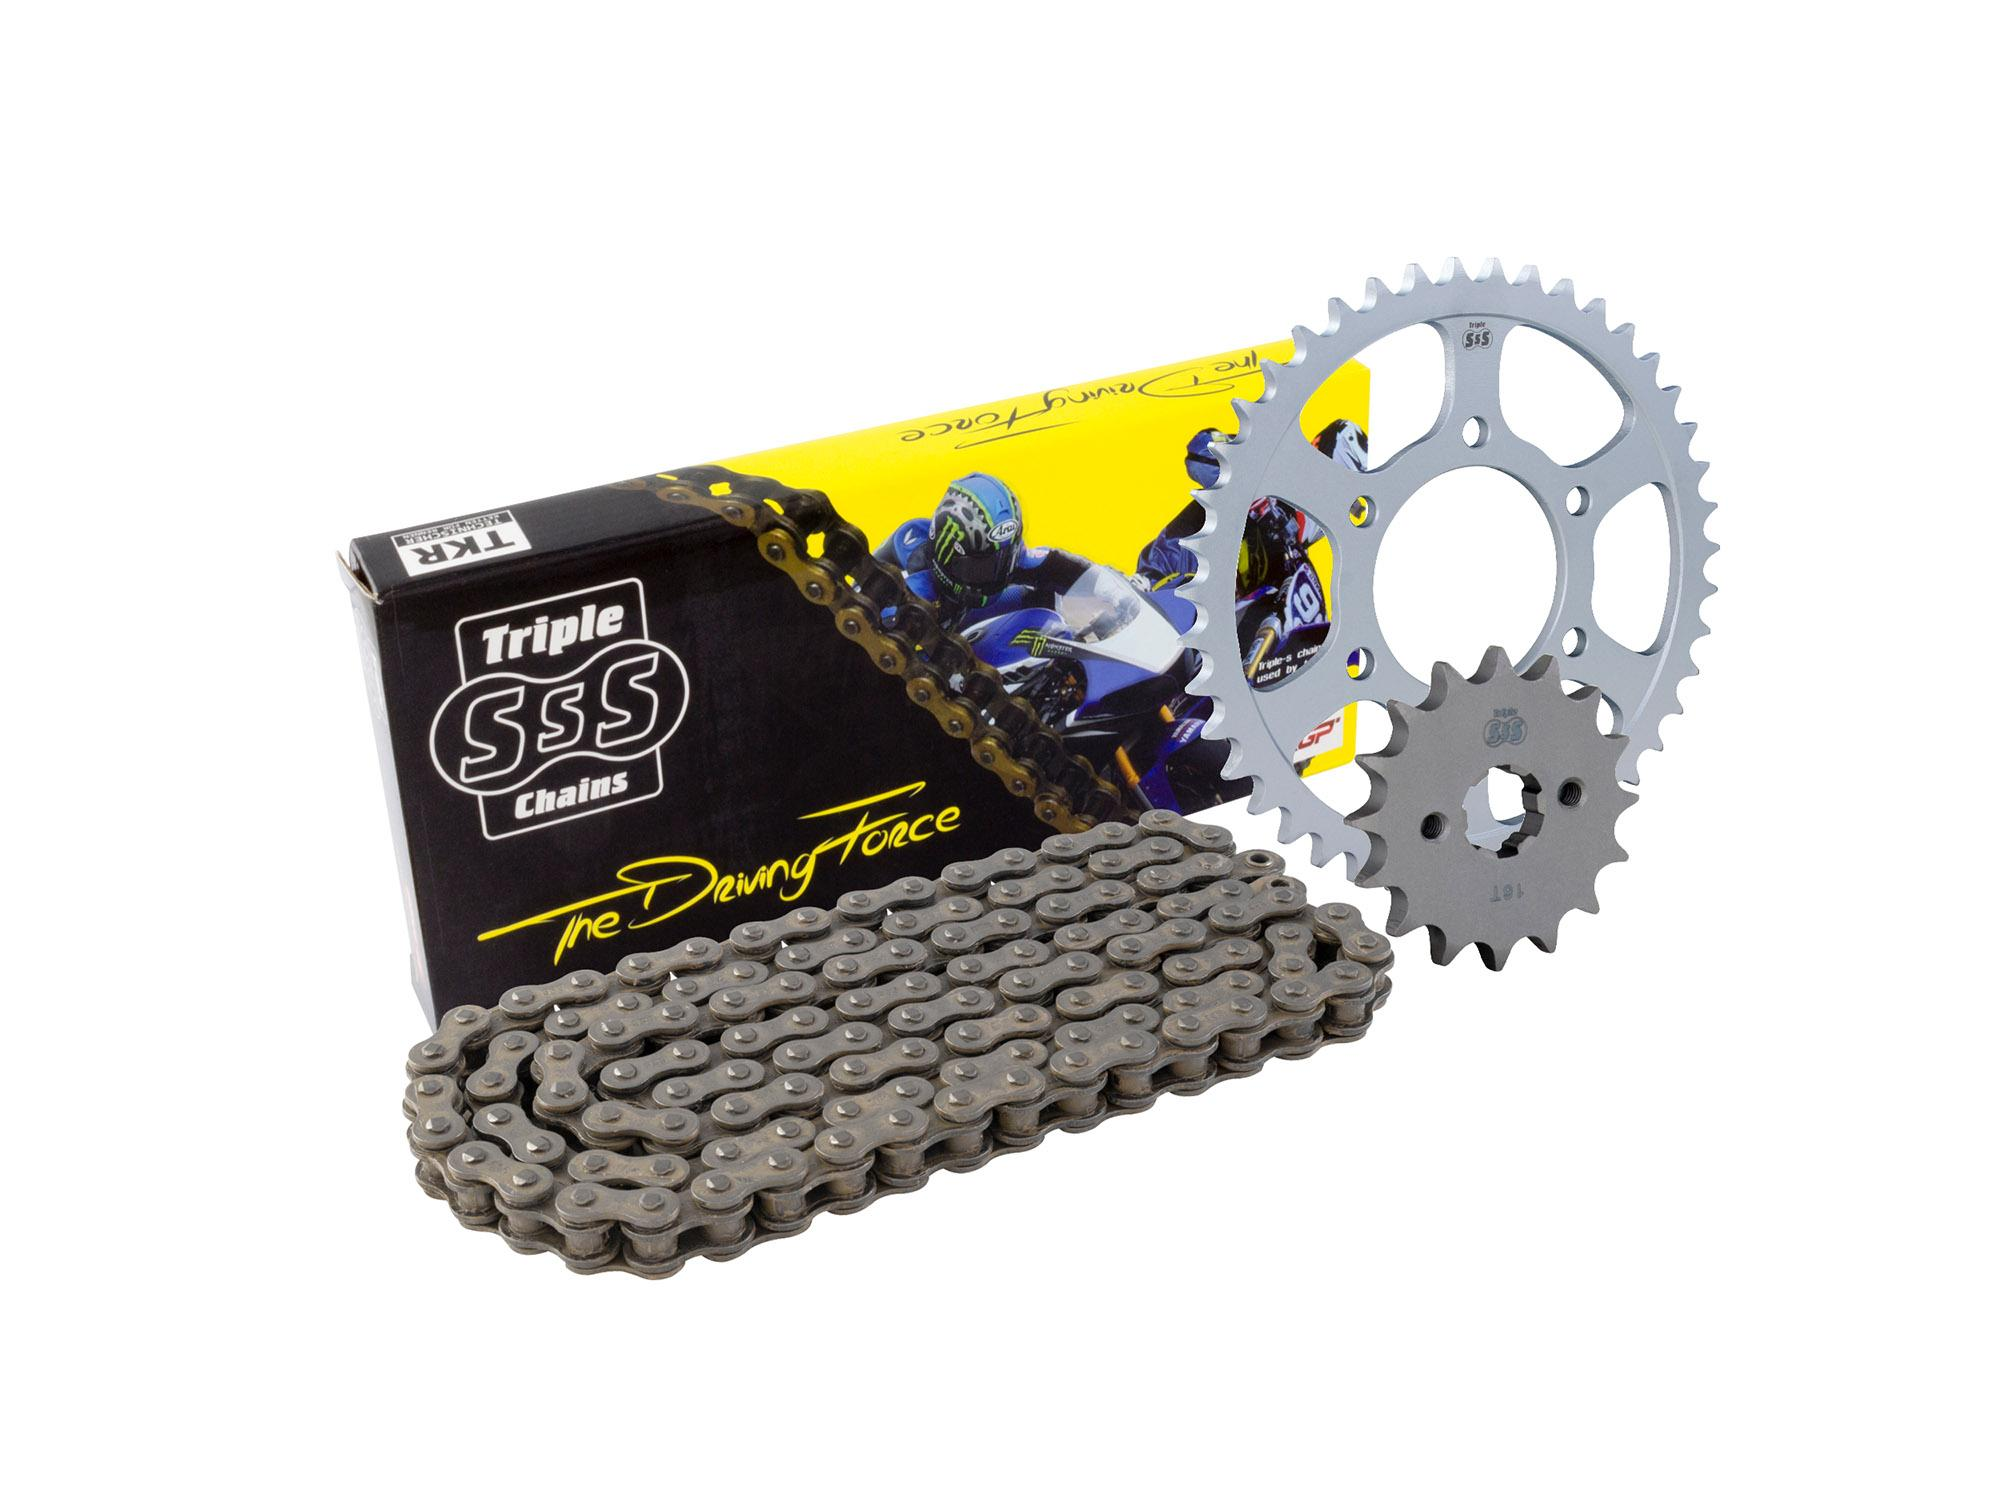 Kawasaki Z750 M ABS 07-09 Chain & Sprocket Kit: 15T Front, 43T Rear, HD O-Ring Black Chain 520H 112Link